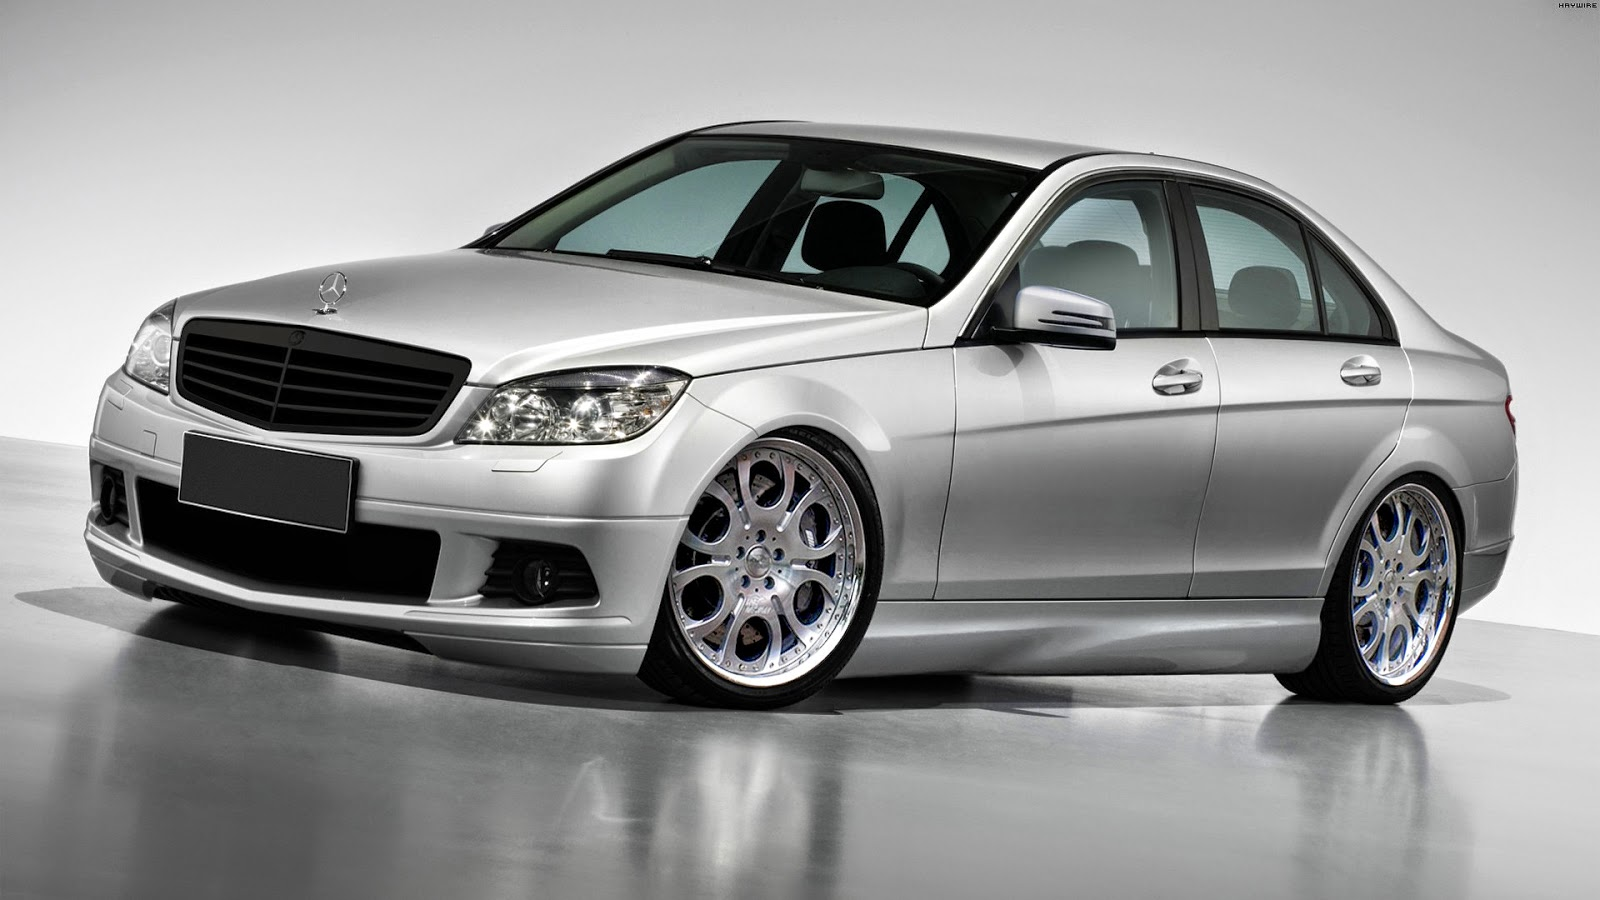 Wallpapers Hd Mercedes Benz Benztuning